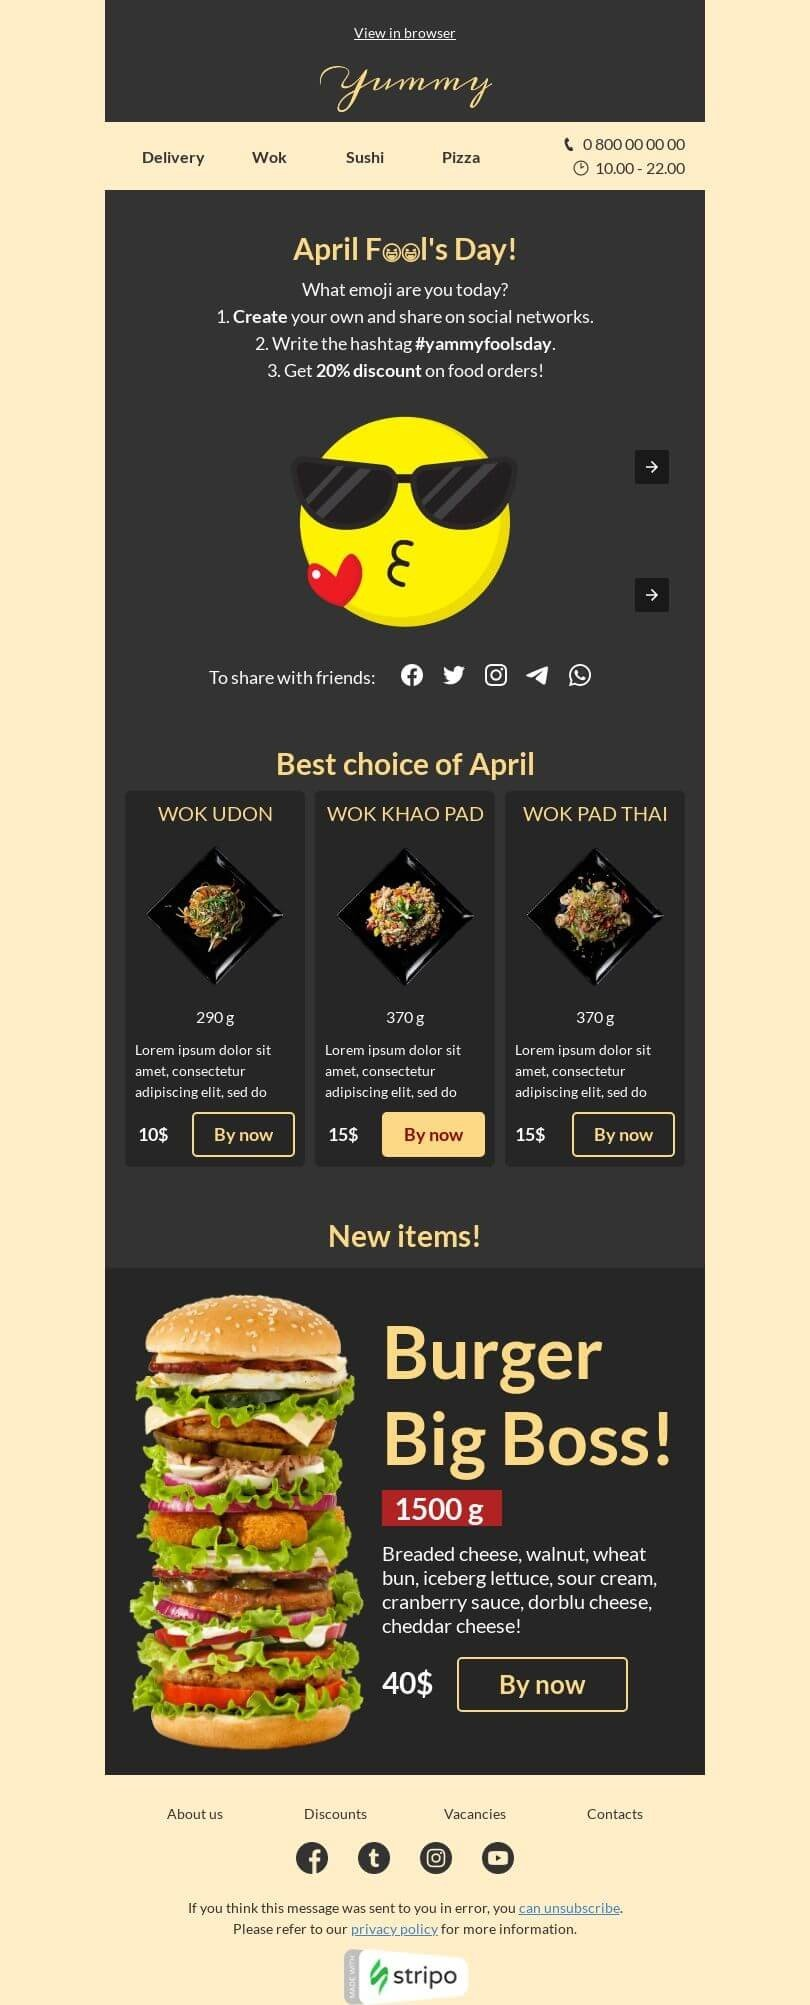 April Fools' Day Email Template «Your emoji» for Food industry desktop view